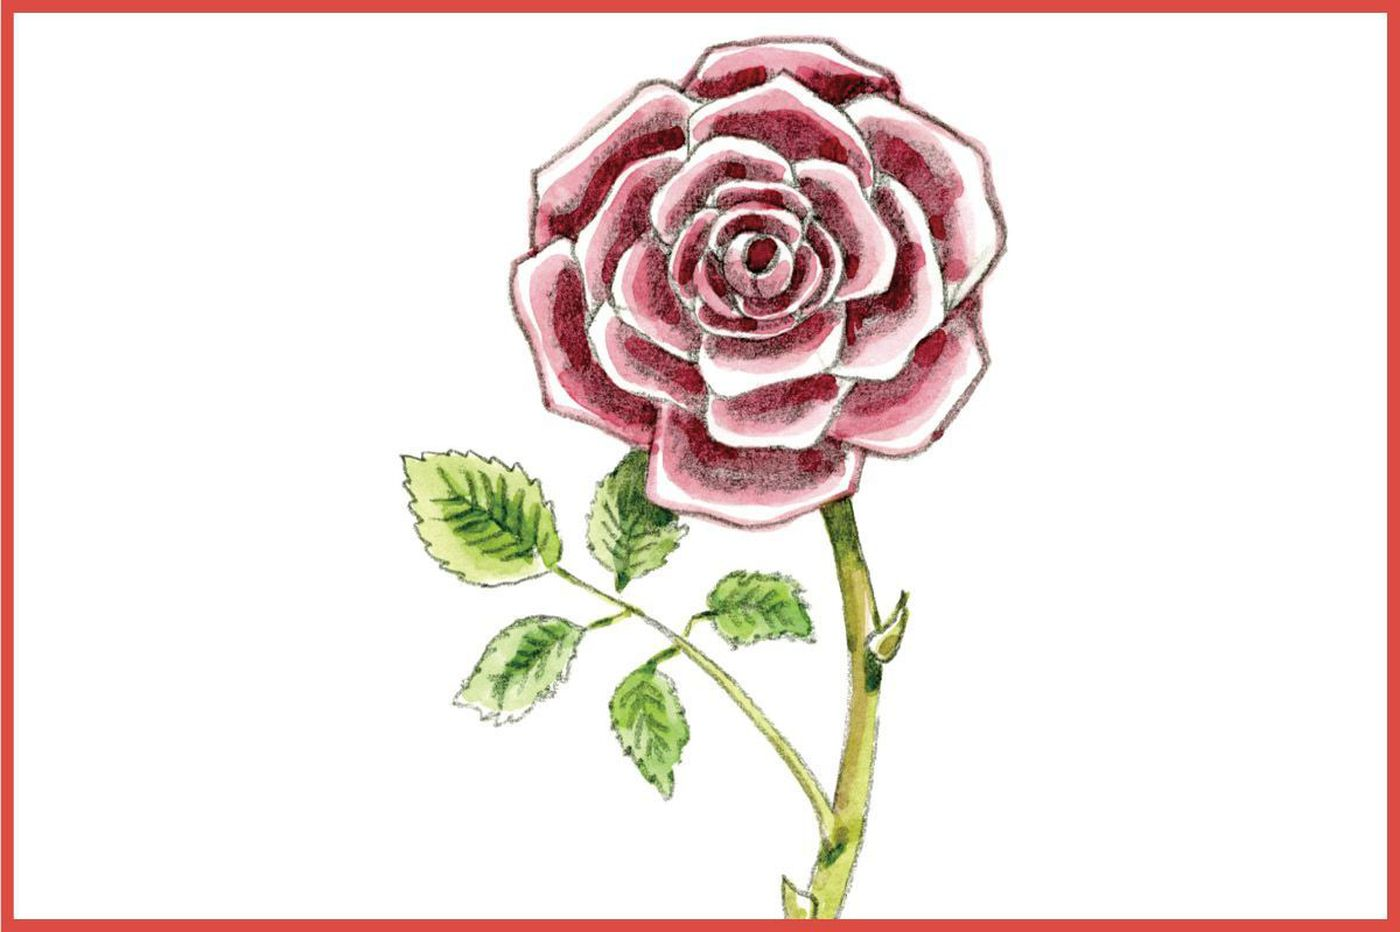 Hey, kids! Draw this beautiful rose for a chance to see your artwork published